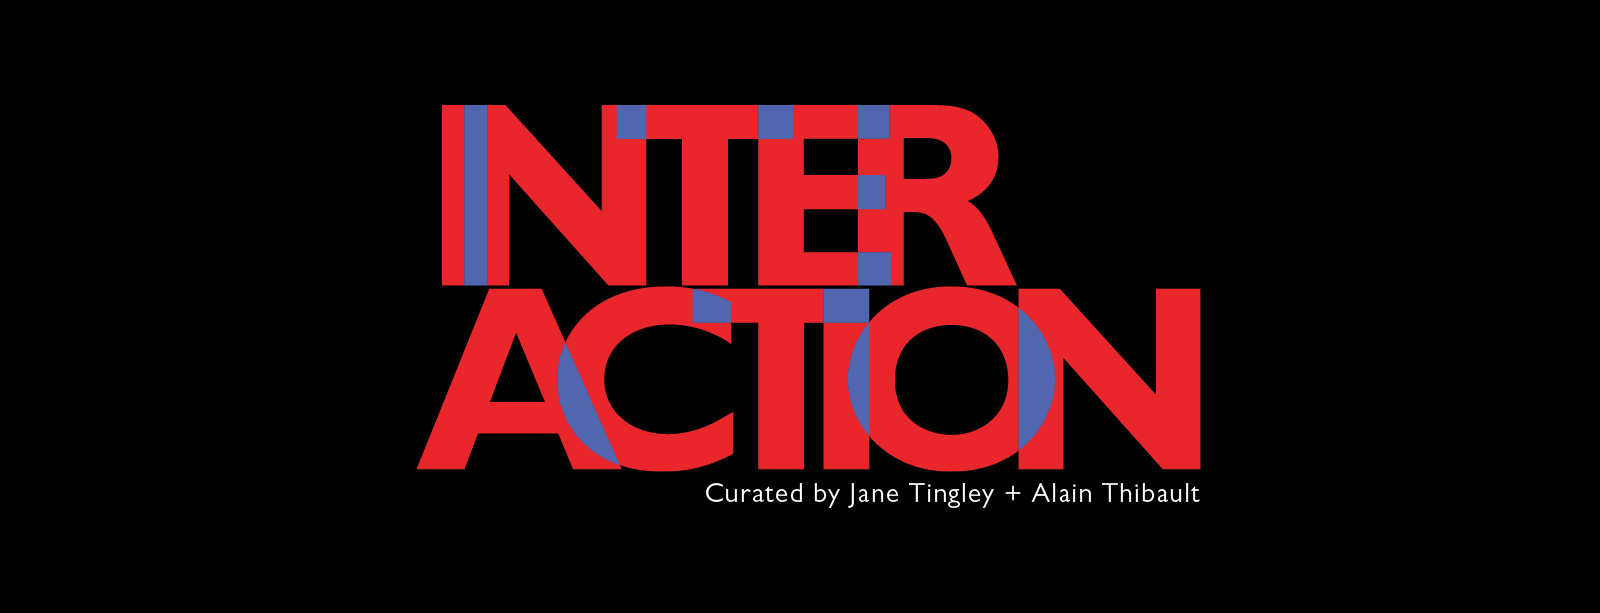 Inter_1600x613.png